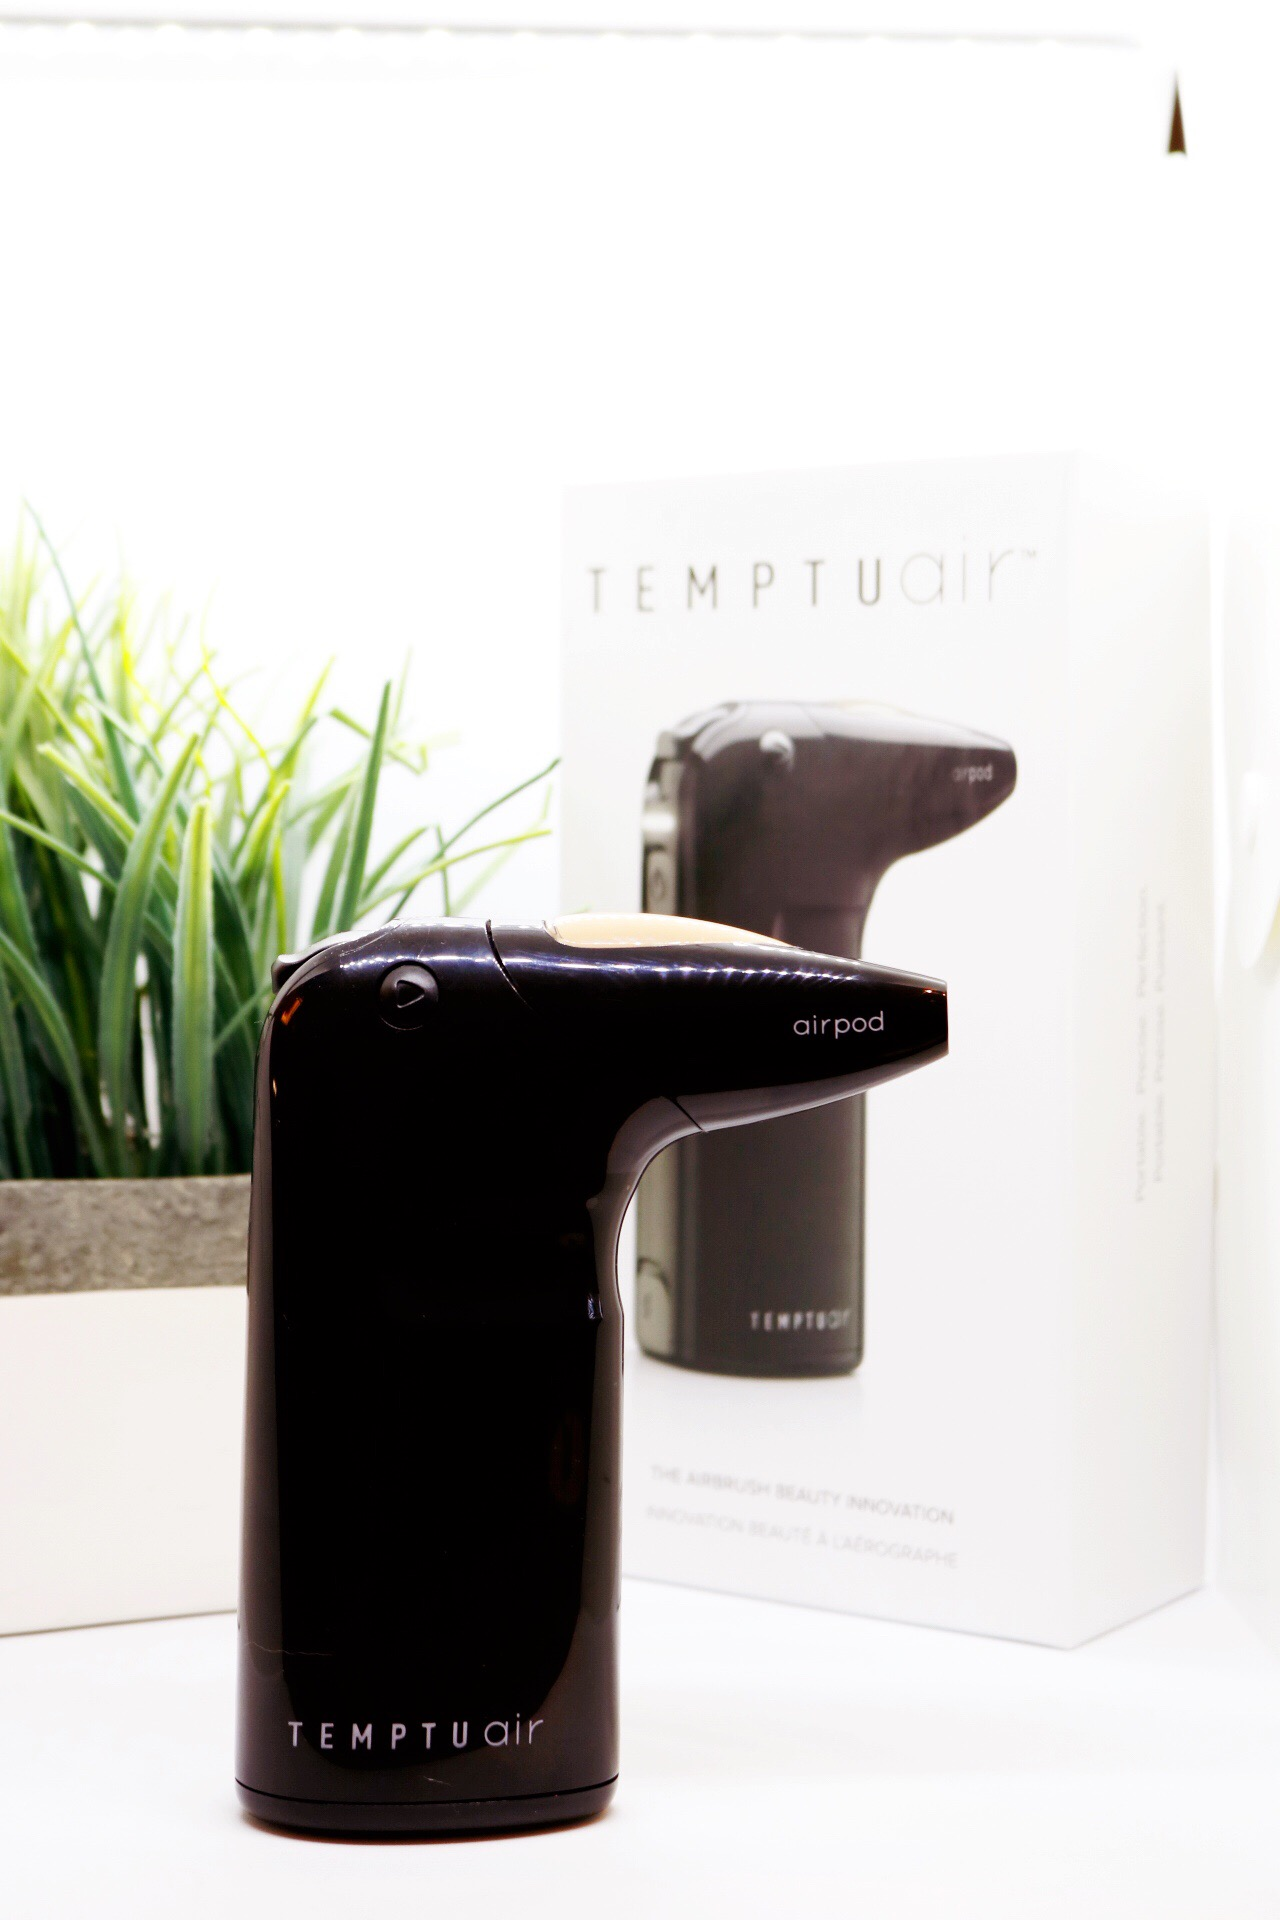 How To Use Temptu Air